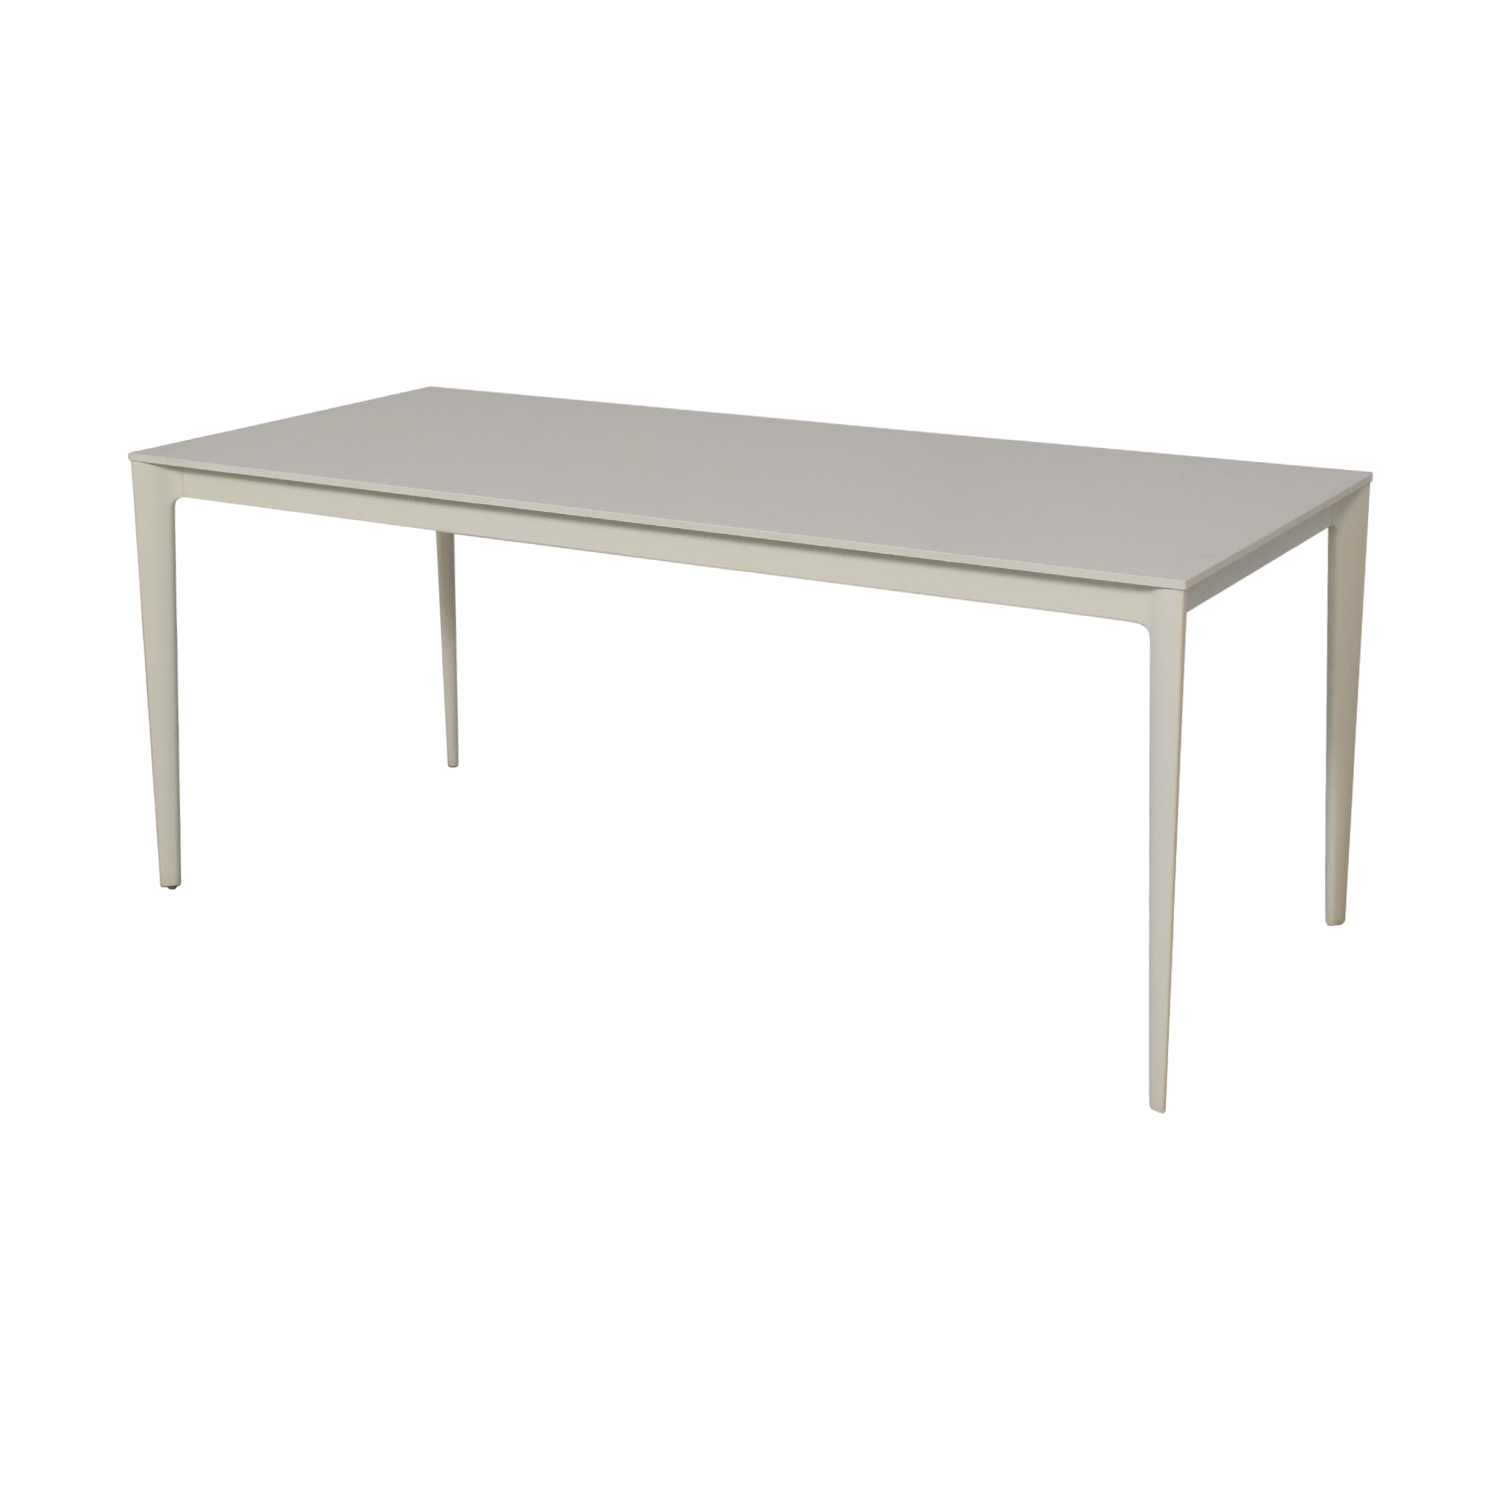 BoConcept BoConcept Torino Table dimensions